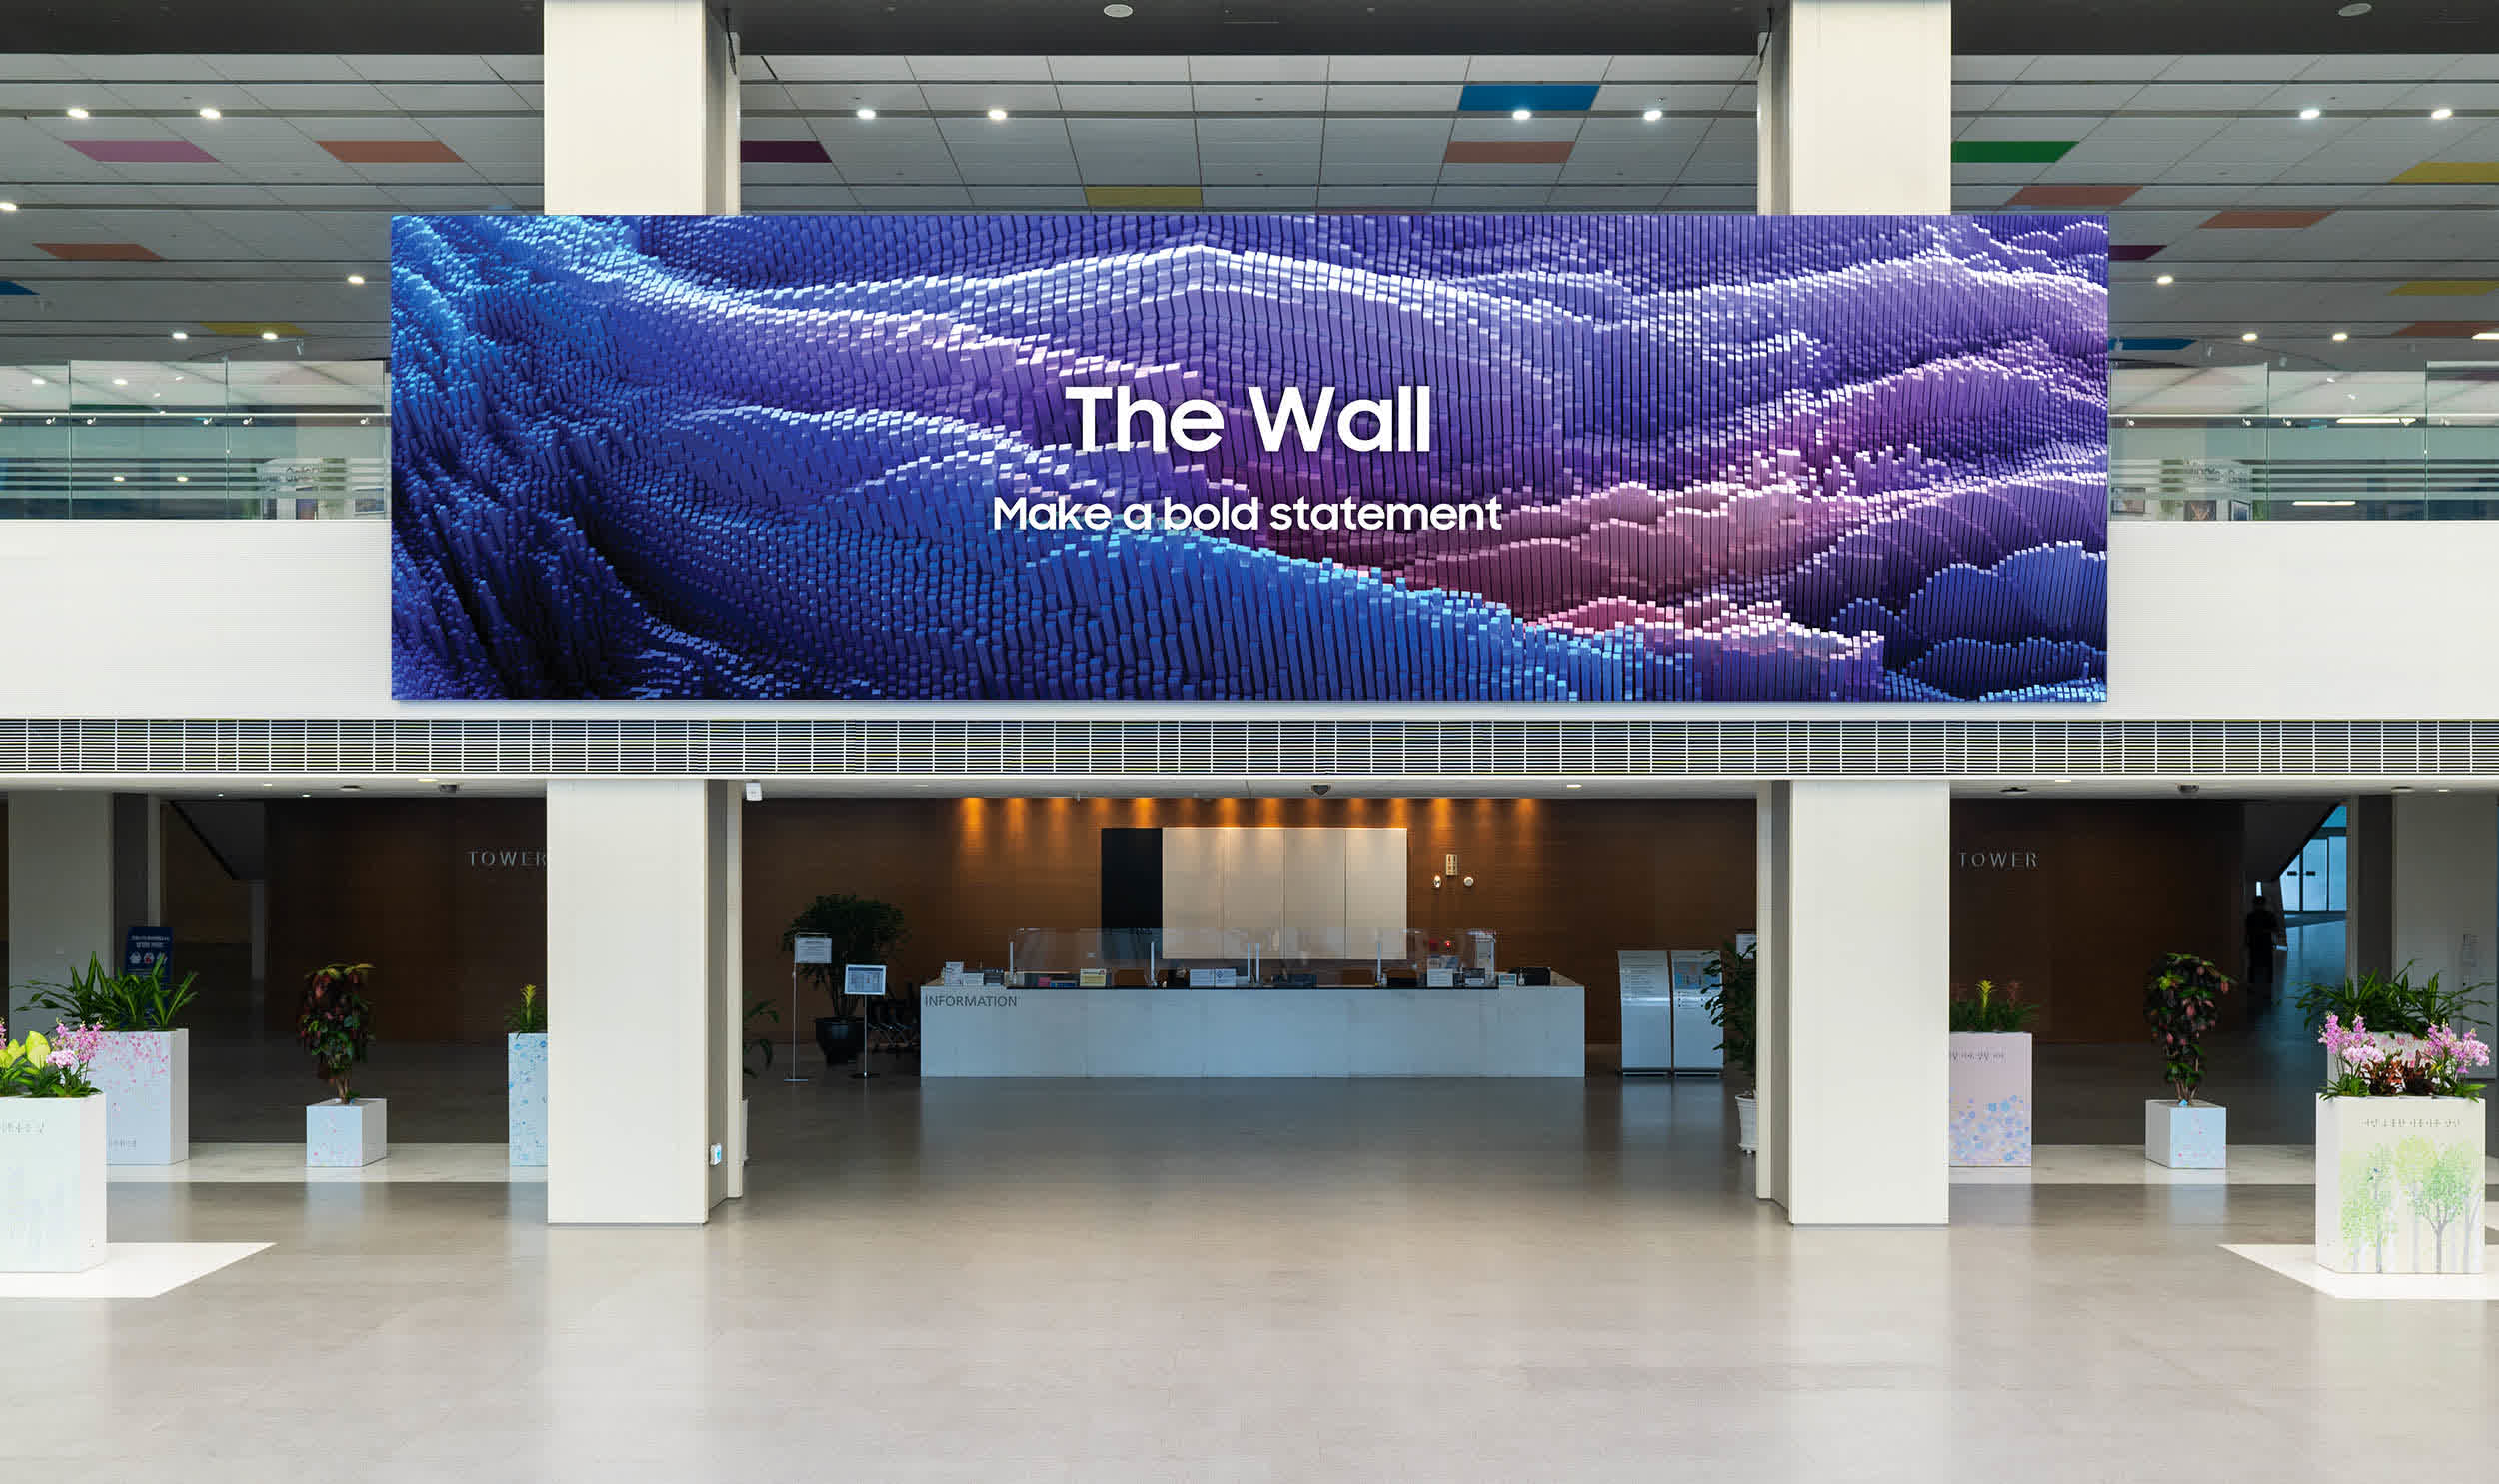 Samsung's latest The Wall TV measures over 1,000 inches diagonally